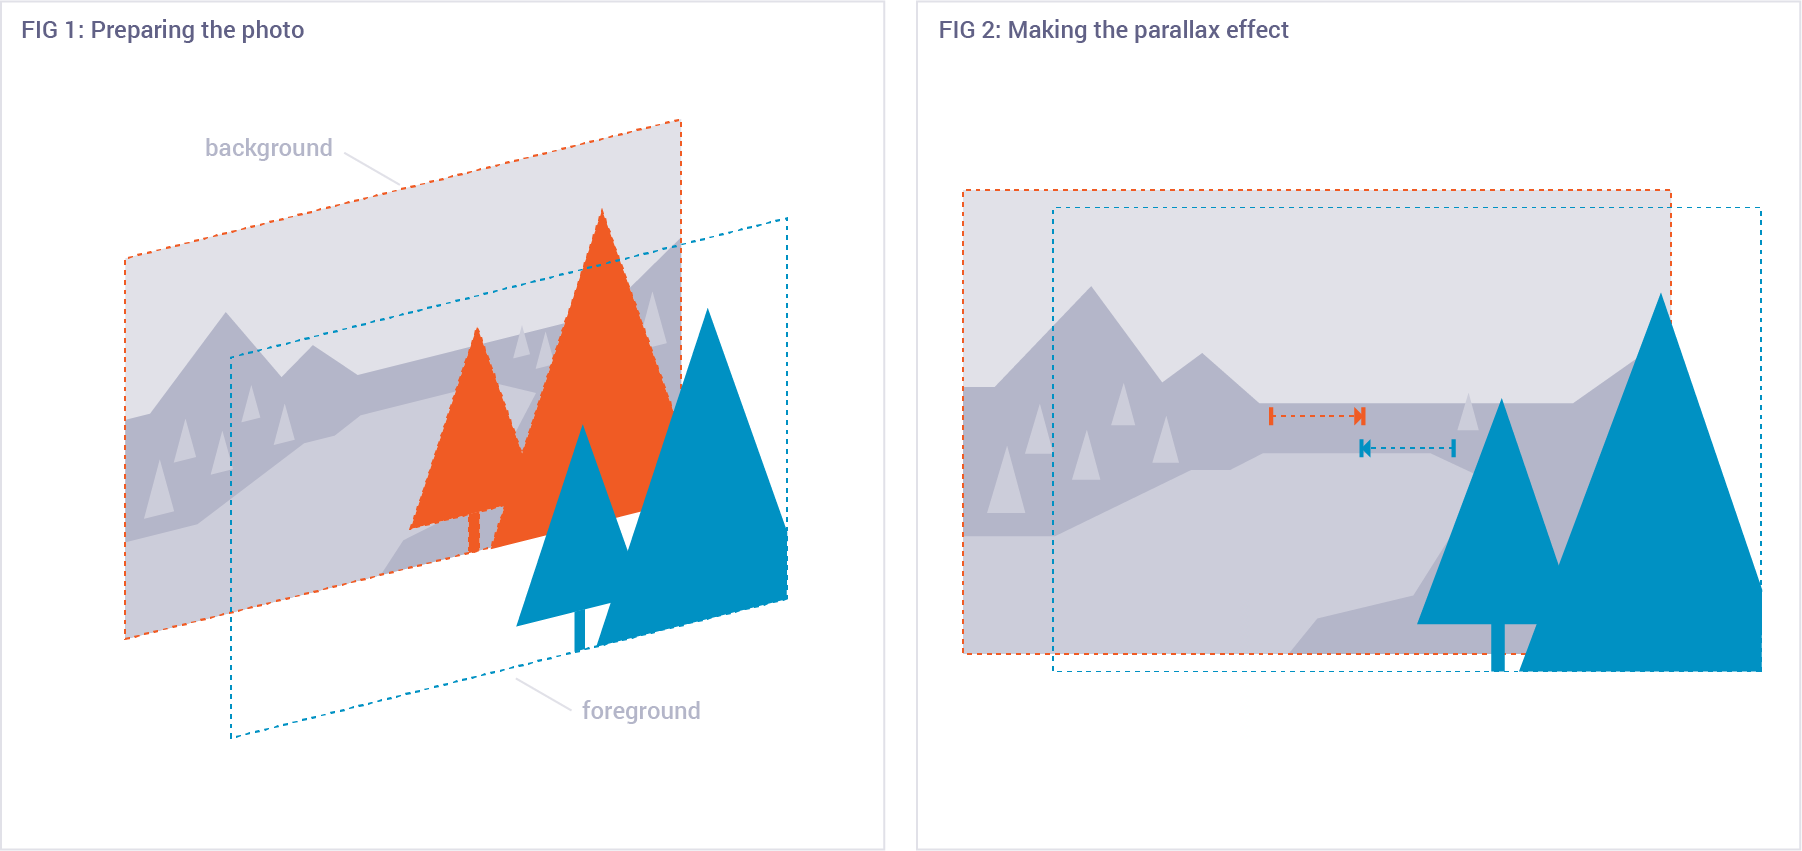 Graphic showing how to separate the foreground of an photo from the background, then how to move them to create a parallax effect